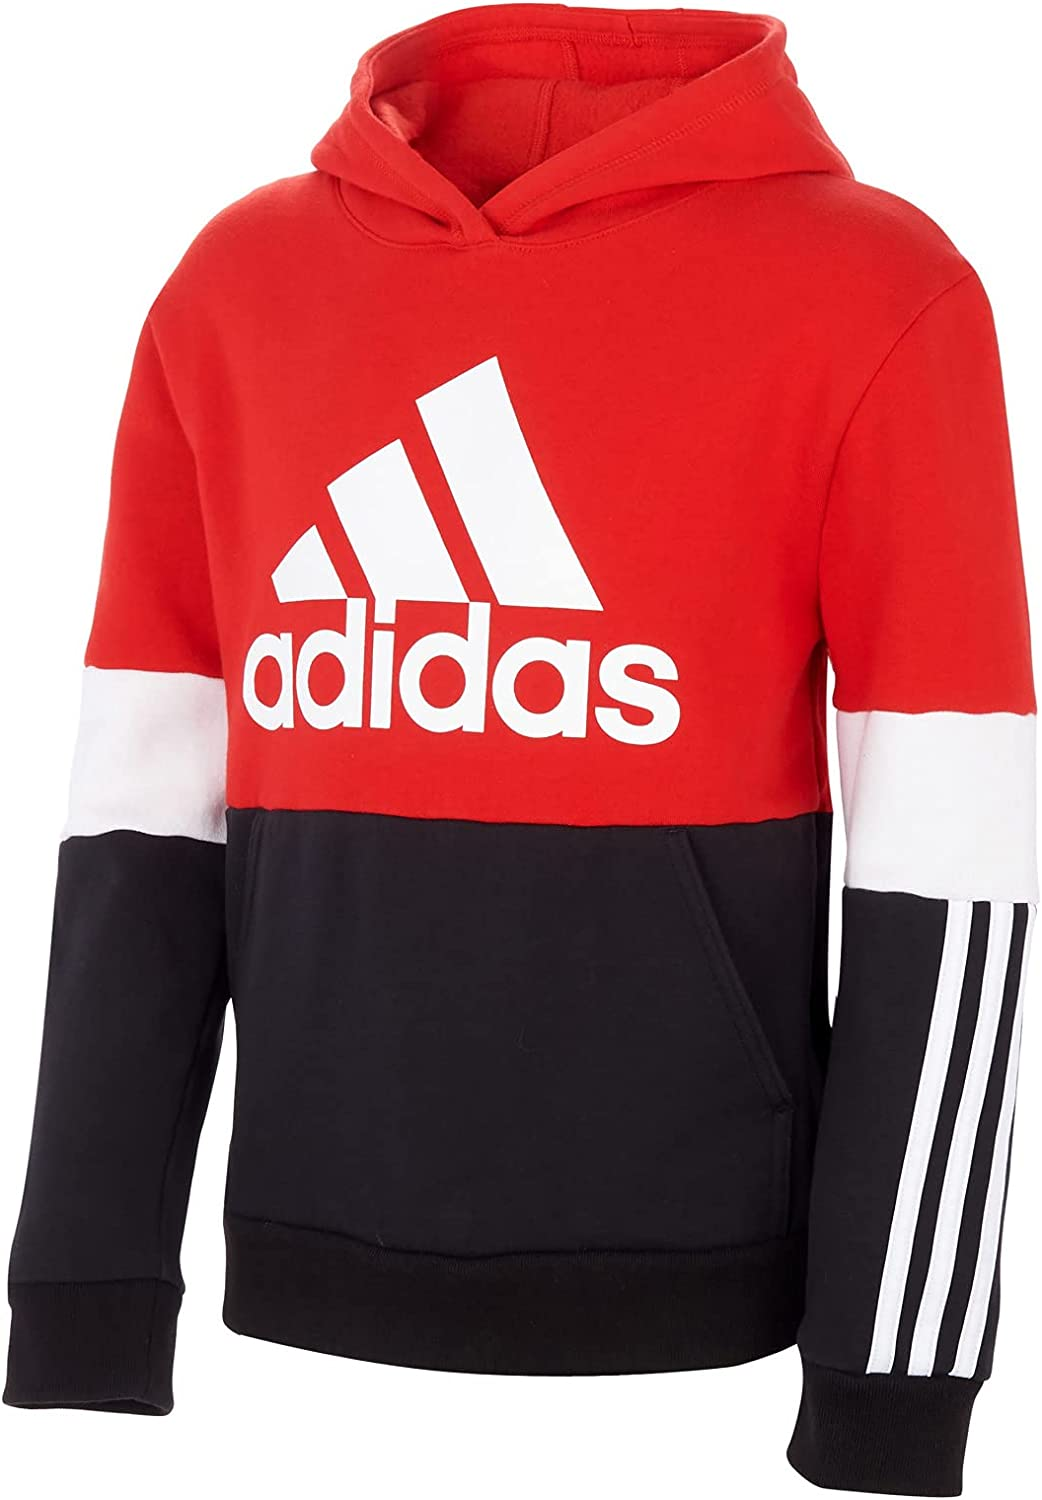 adidas Boy's Color-Block 3-Stripes Hooded Pullover (Toddler/Little Kids)